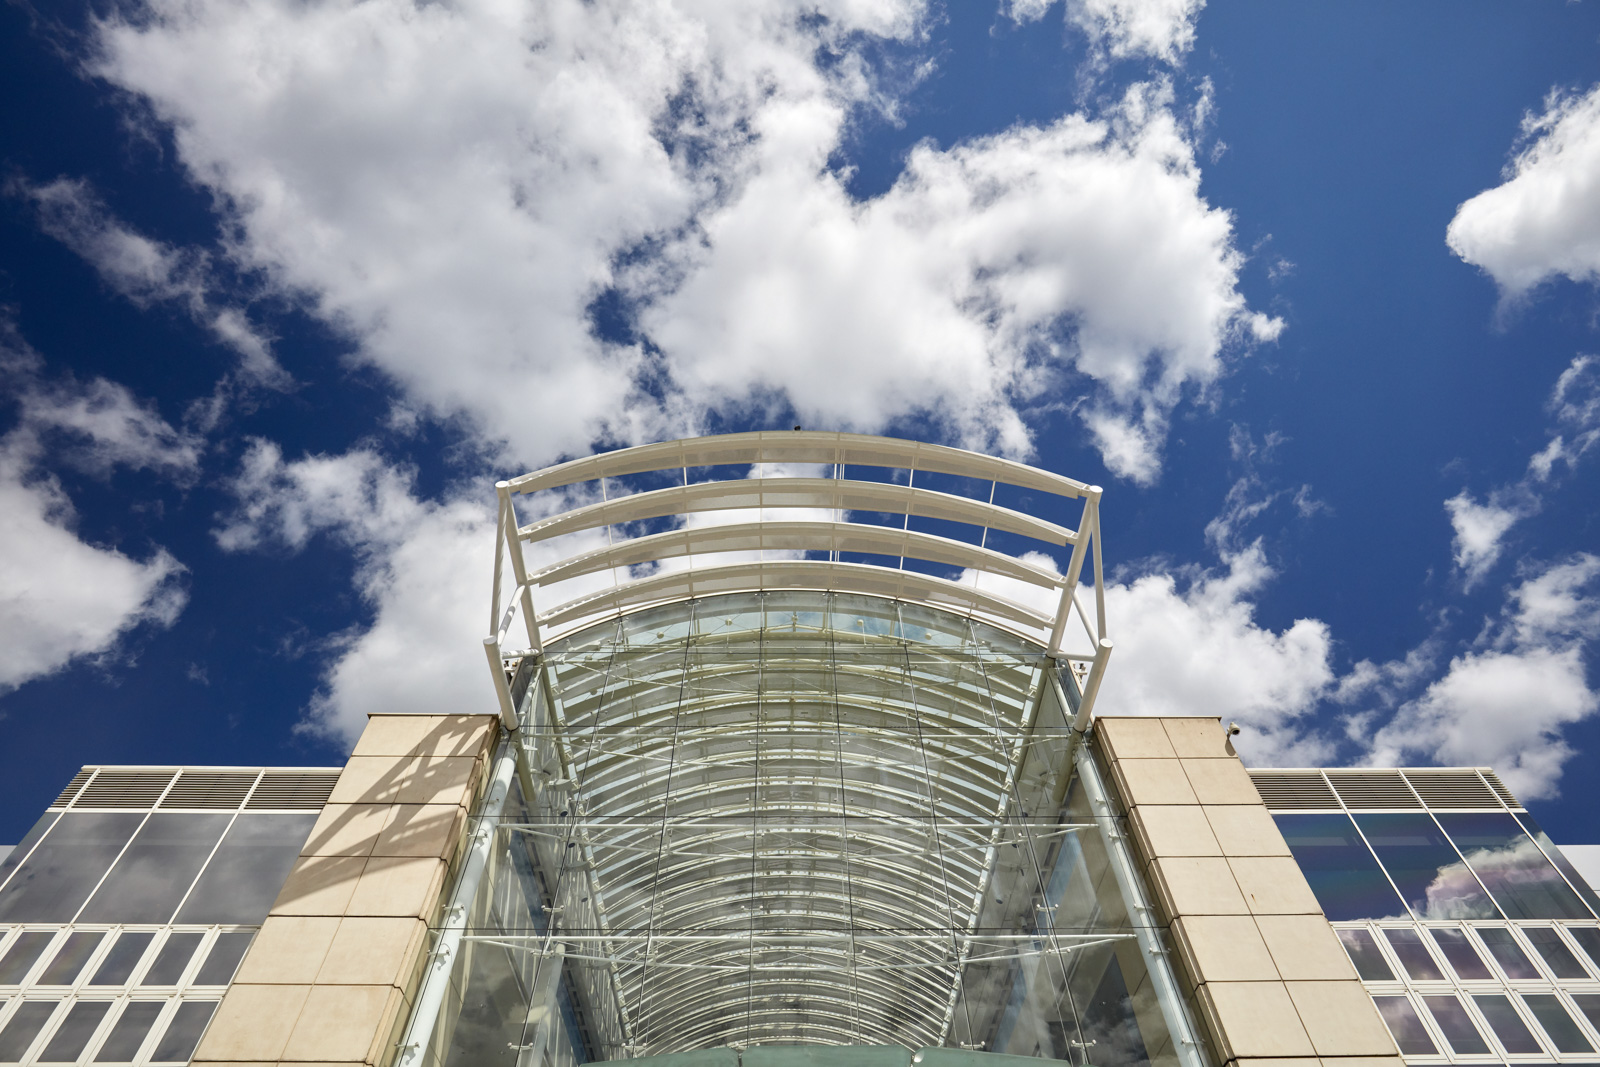 THE_MALL_ARCHITECTURE_074.jpg